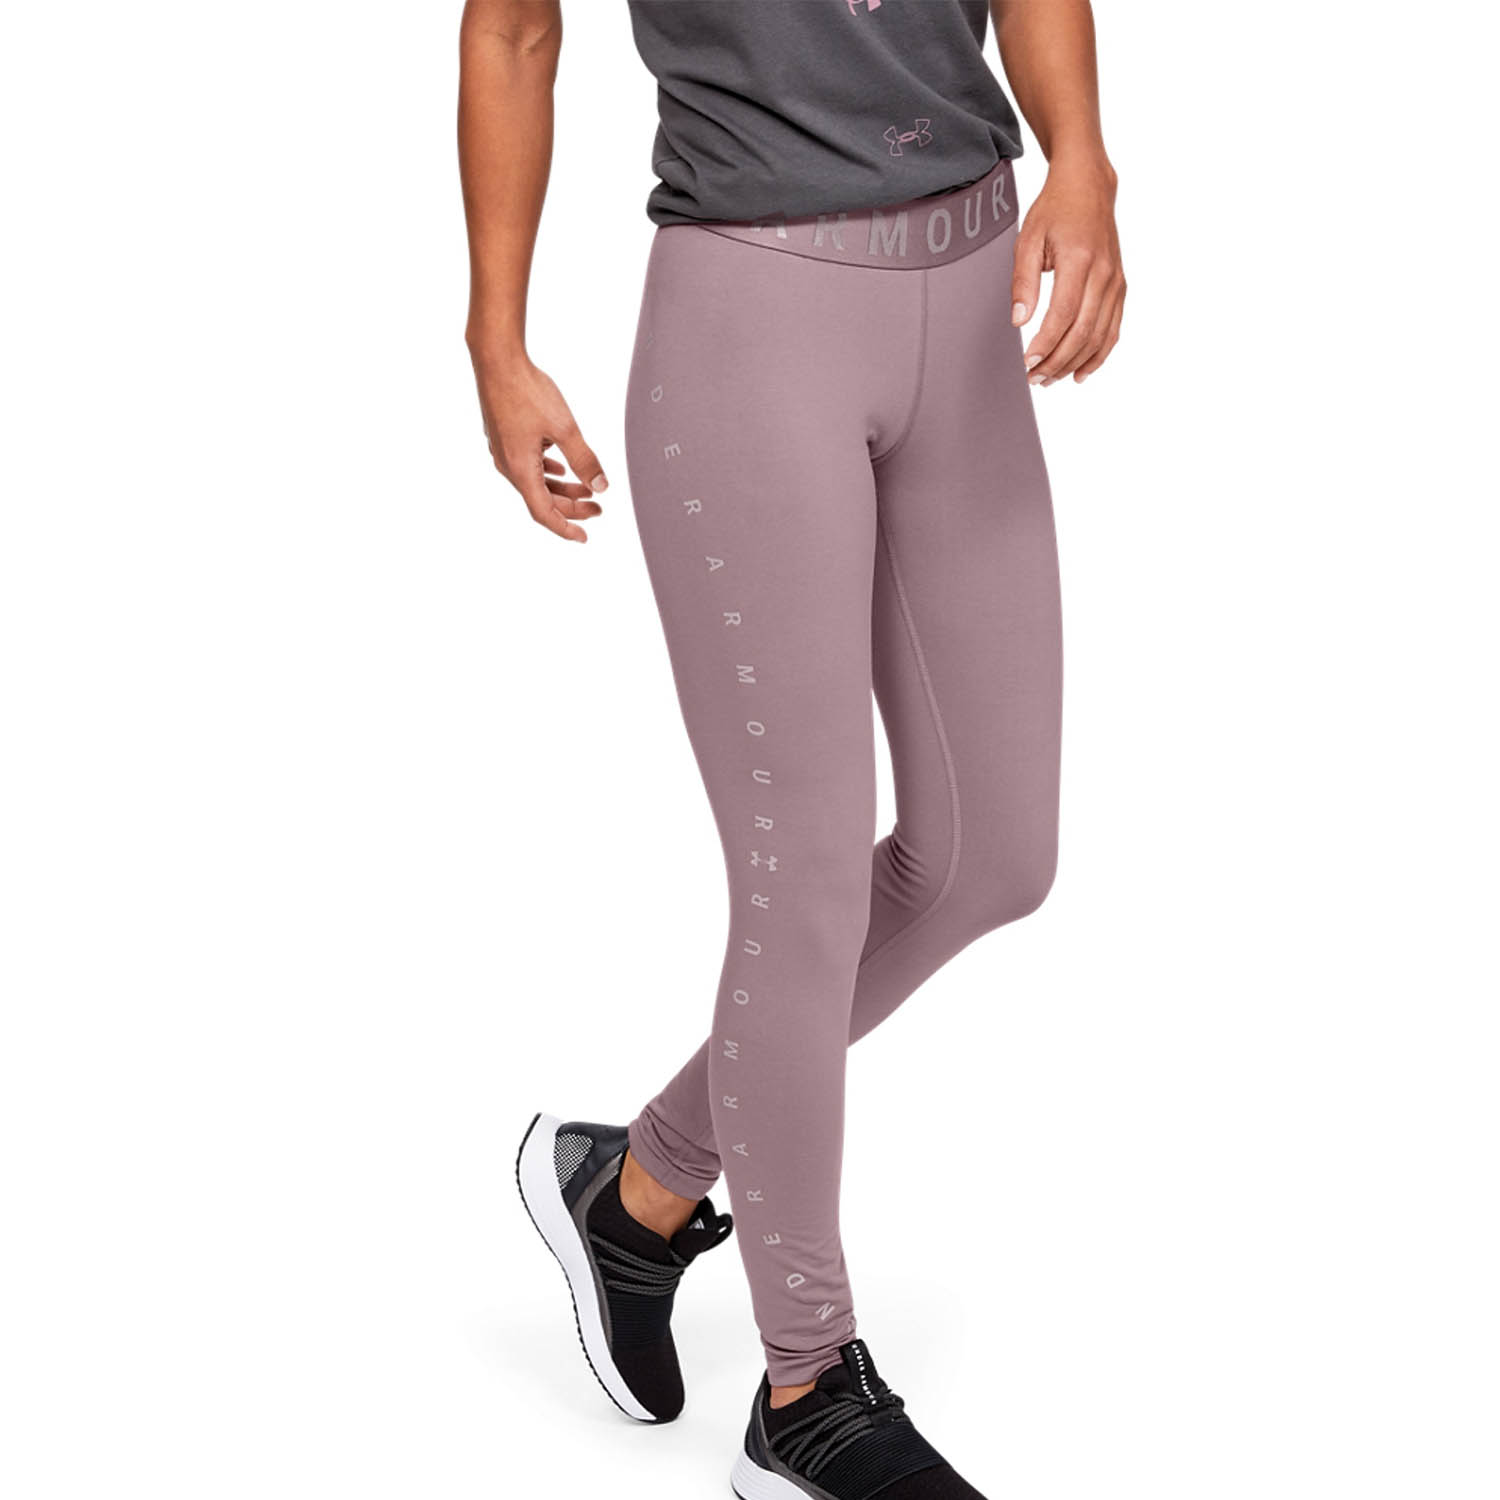 Under Armour Favorite Graphic Tights - Pink